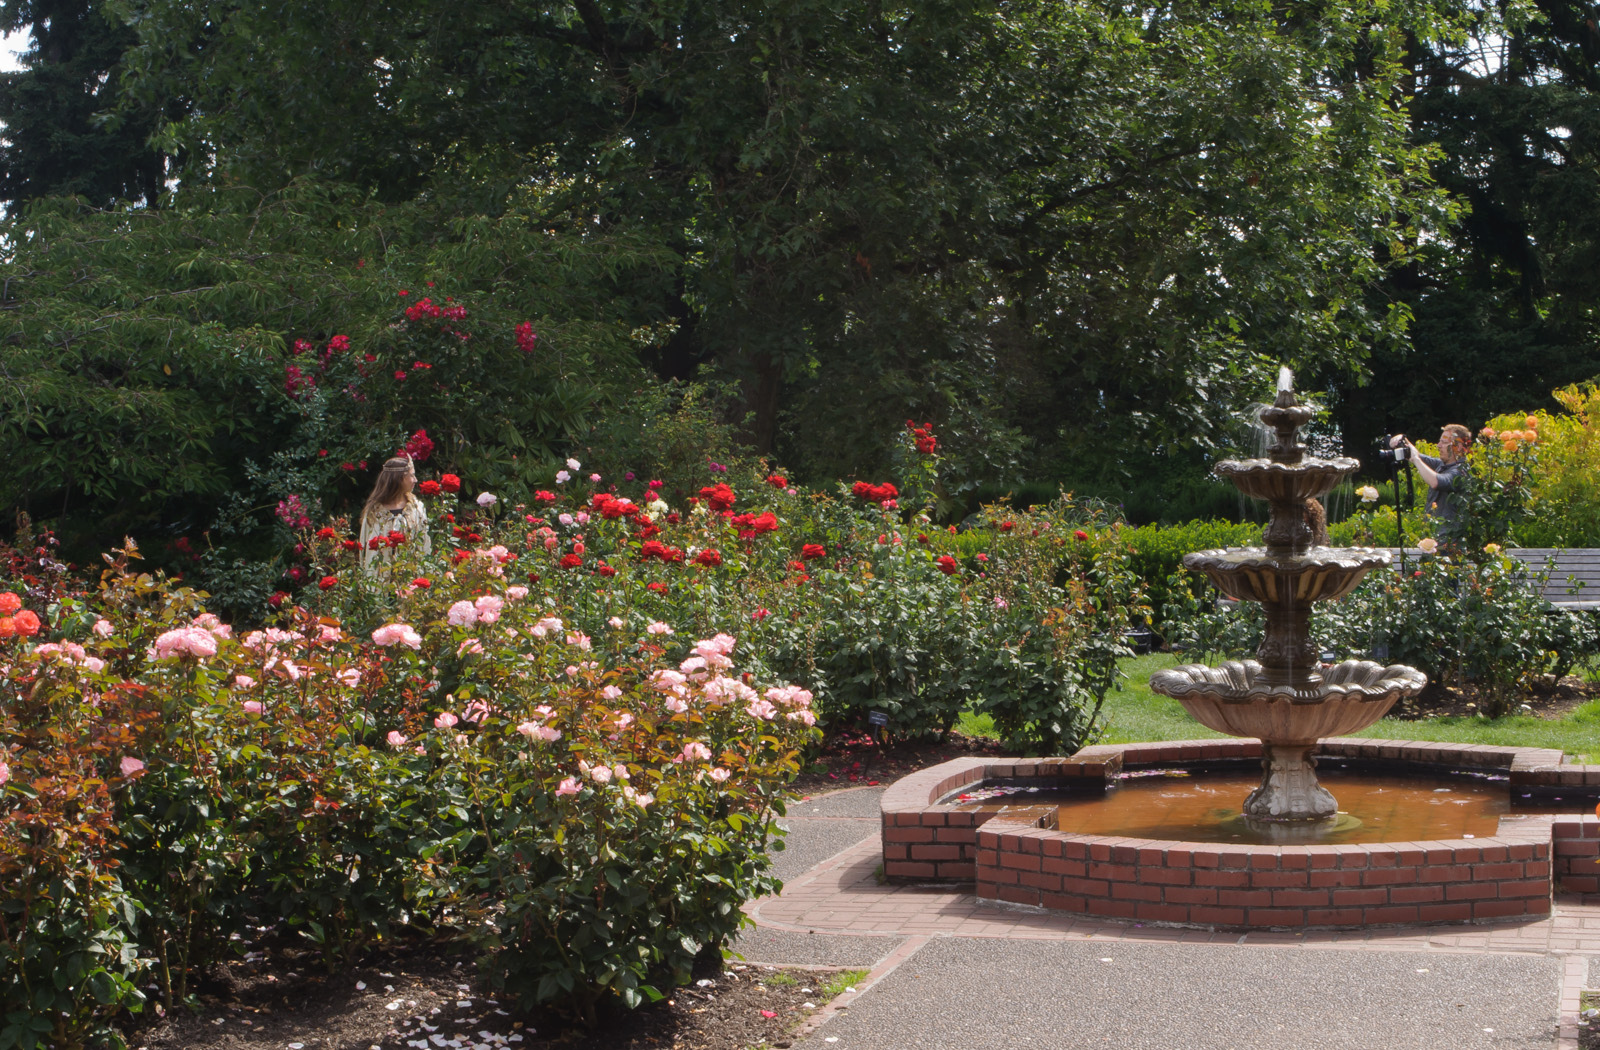 International Rose Test Garden, Portland | © InSapphoWeTrust/Flickr